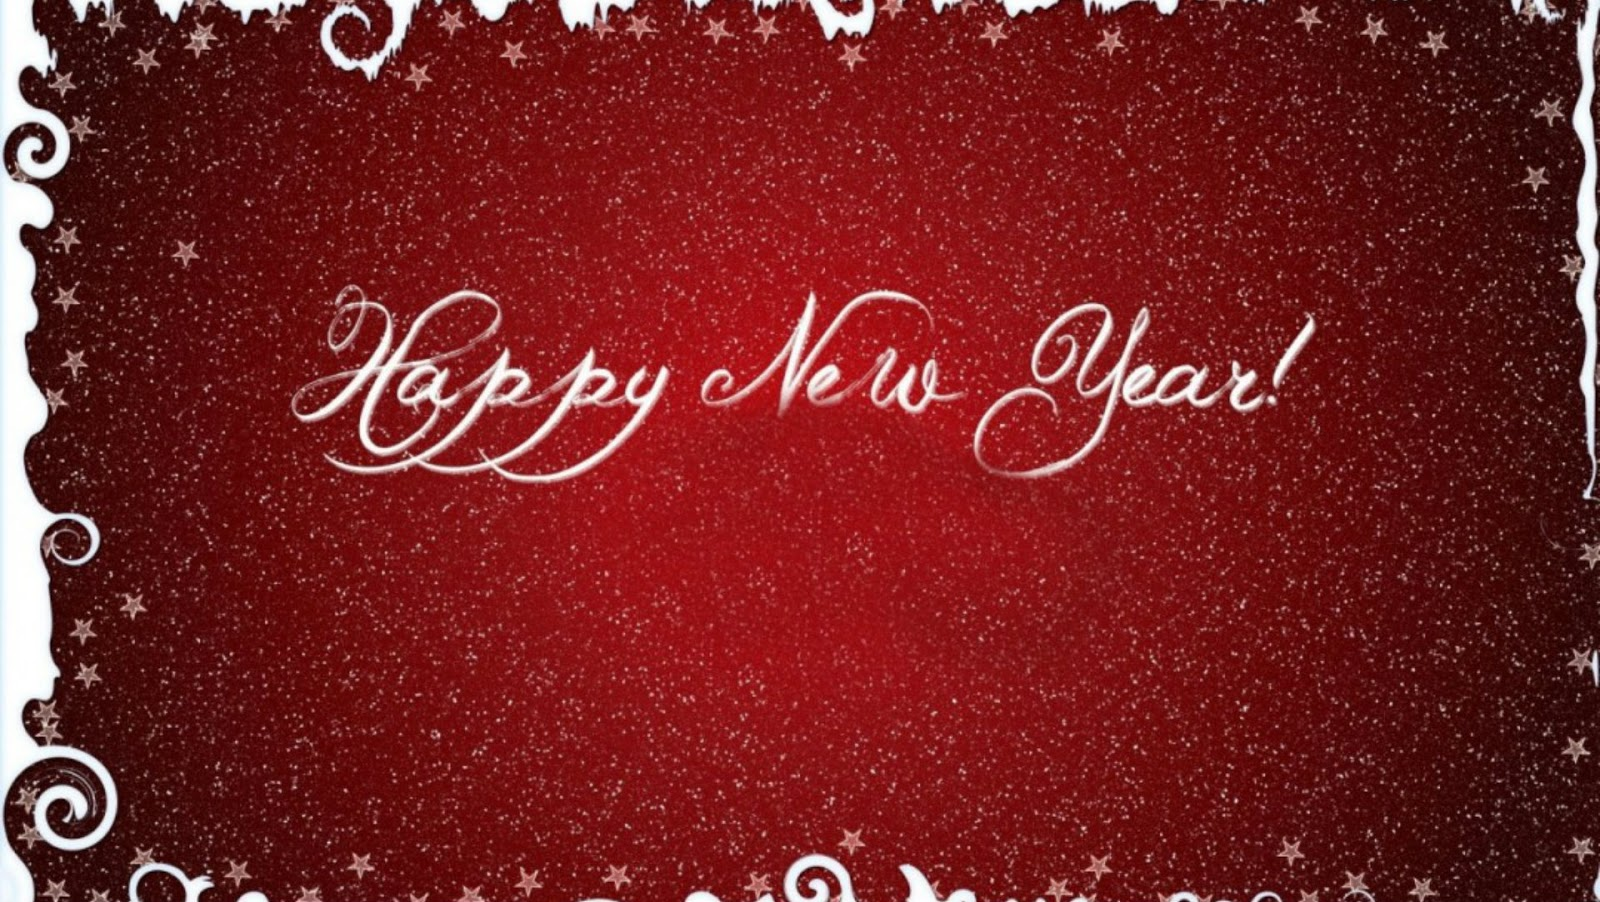 New year wishes wallpaper hd